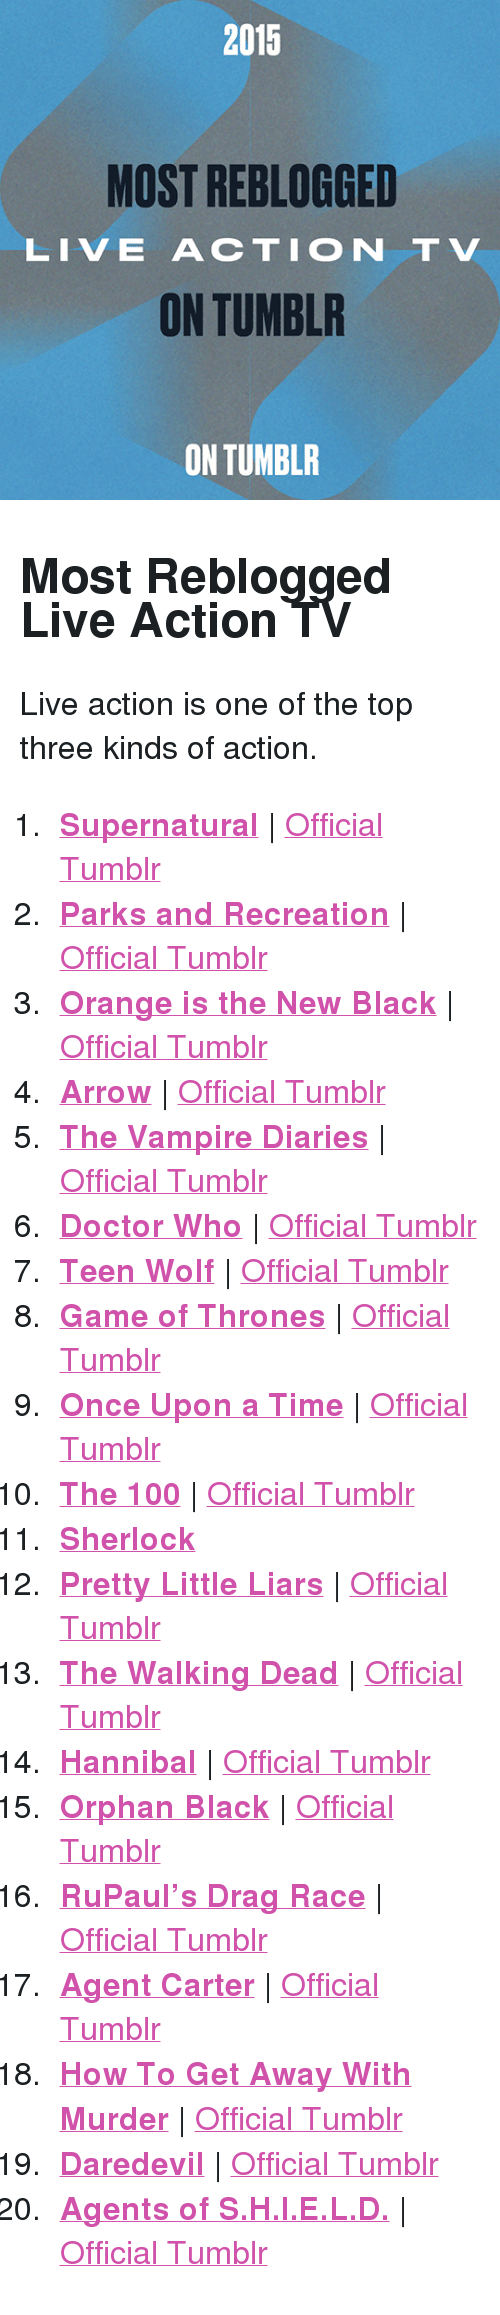 """Tumblr On: 2015  MOST REBLOGGED  LIVE ACTION TV  ON TUMBLR  ON TUMBLR <h2>Most Reblogged Live Action TV</h2><p>Live action is one of the top three kinds of action.<br/></p><ol><li><b><a href=""""http://www.tumblr.com/search/supernatural"""">Supernatural</a></b>